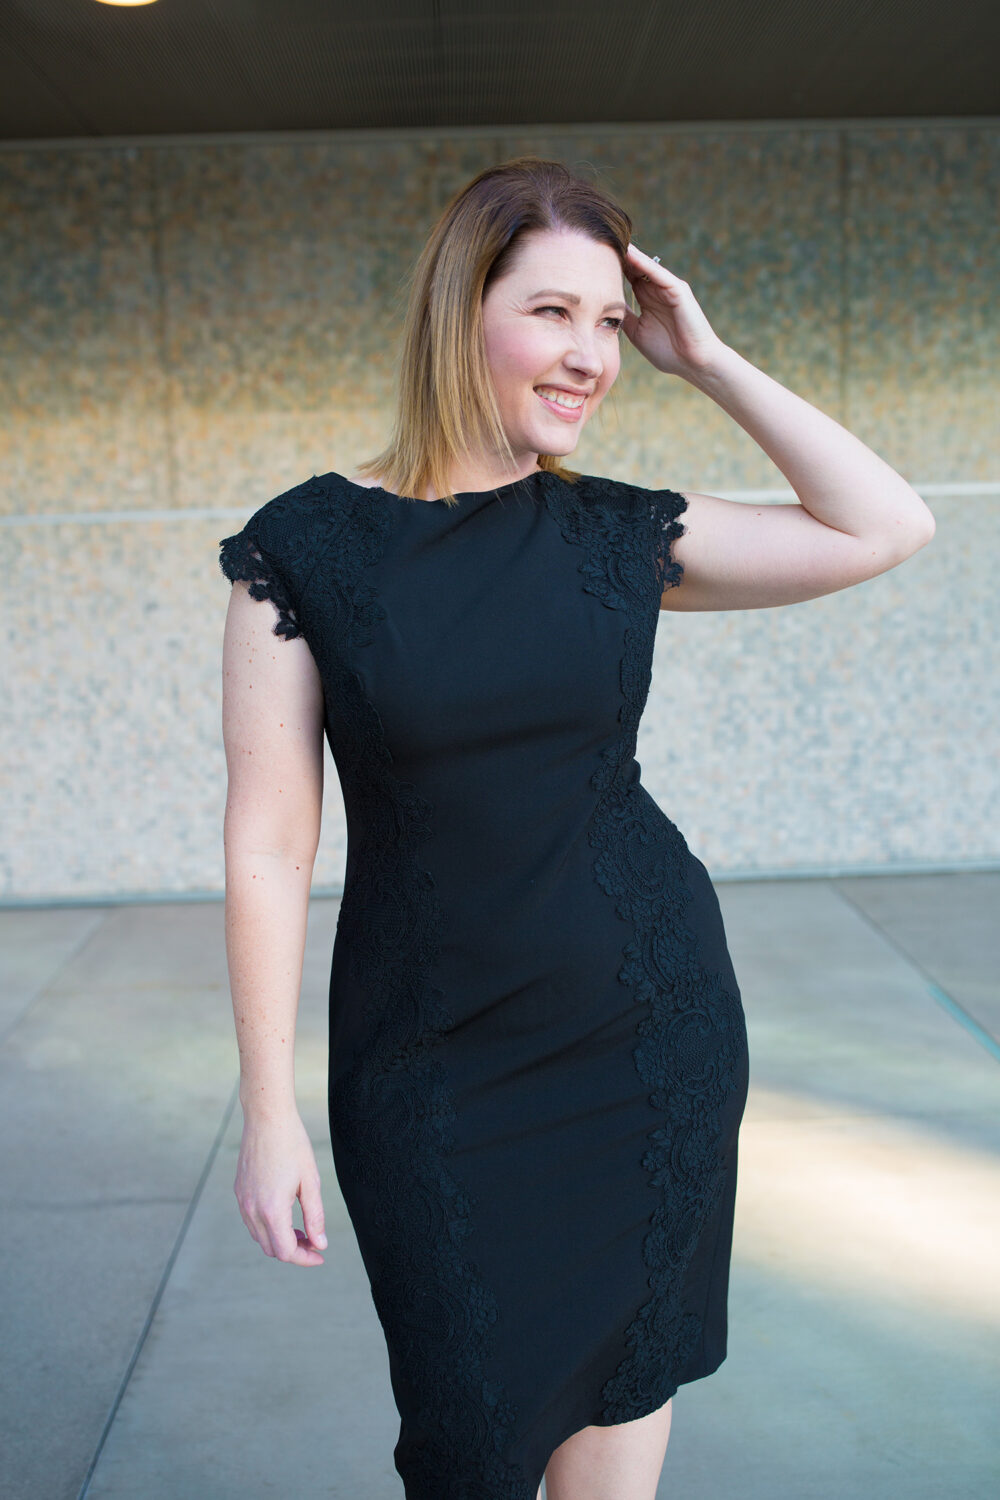 I love this black lace dress, it's perfect for date nights!